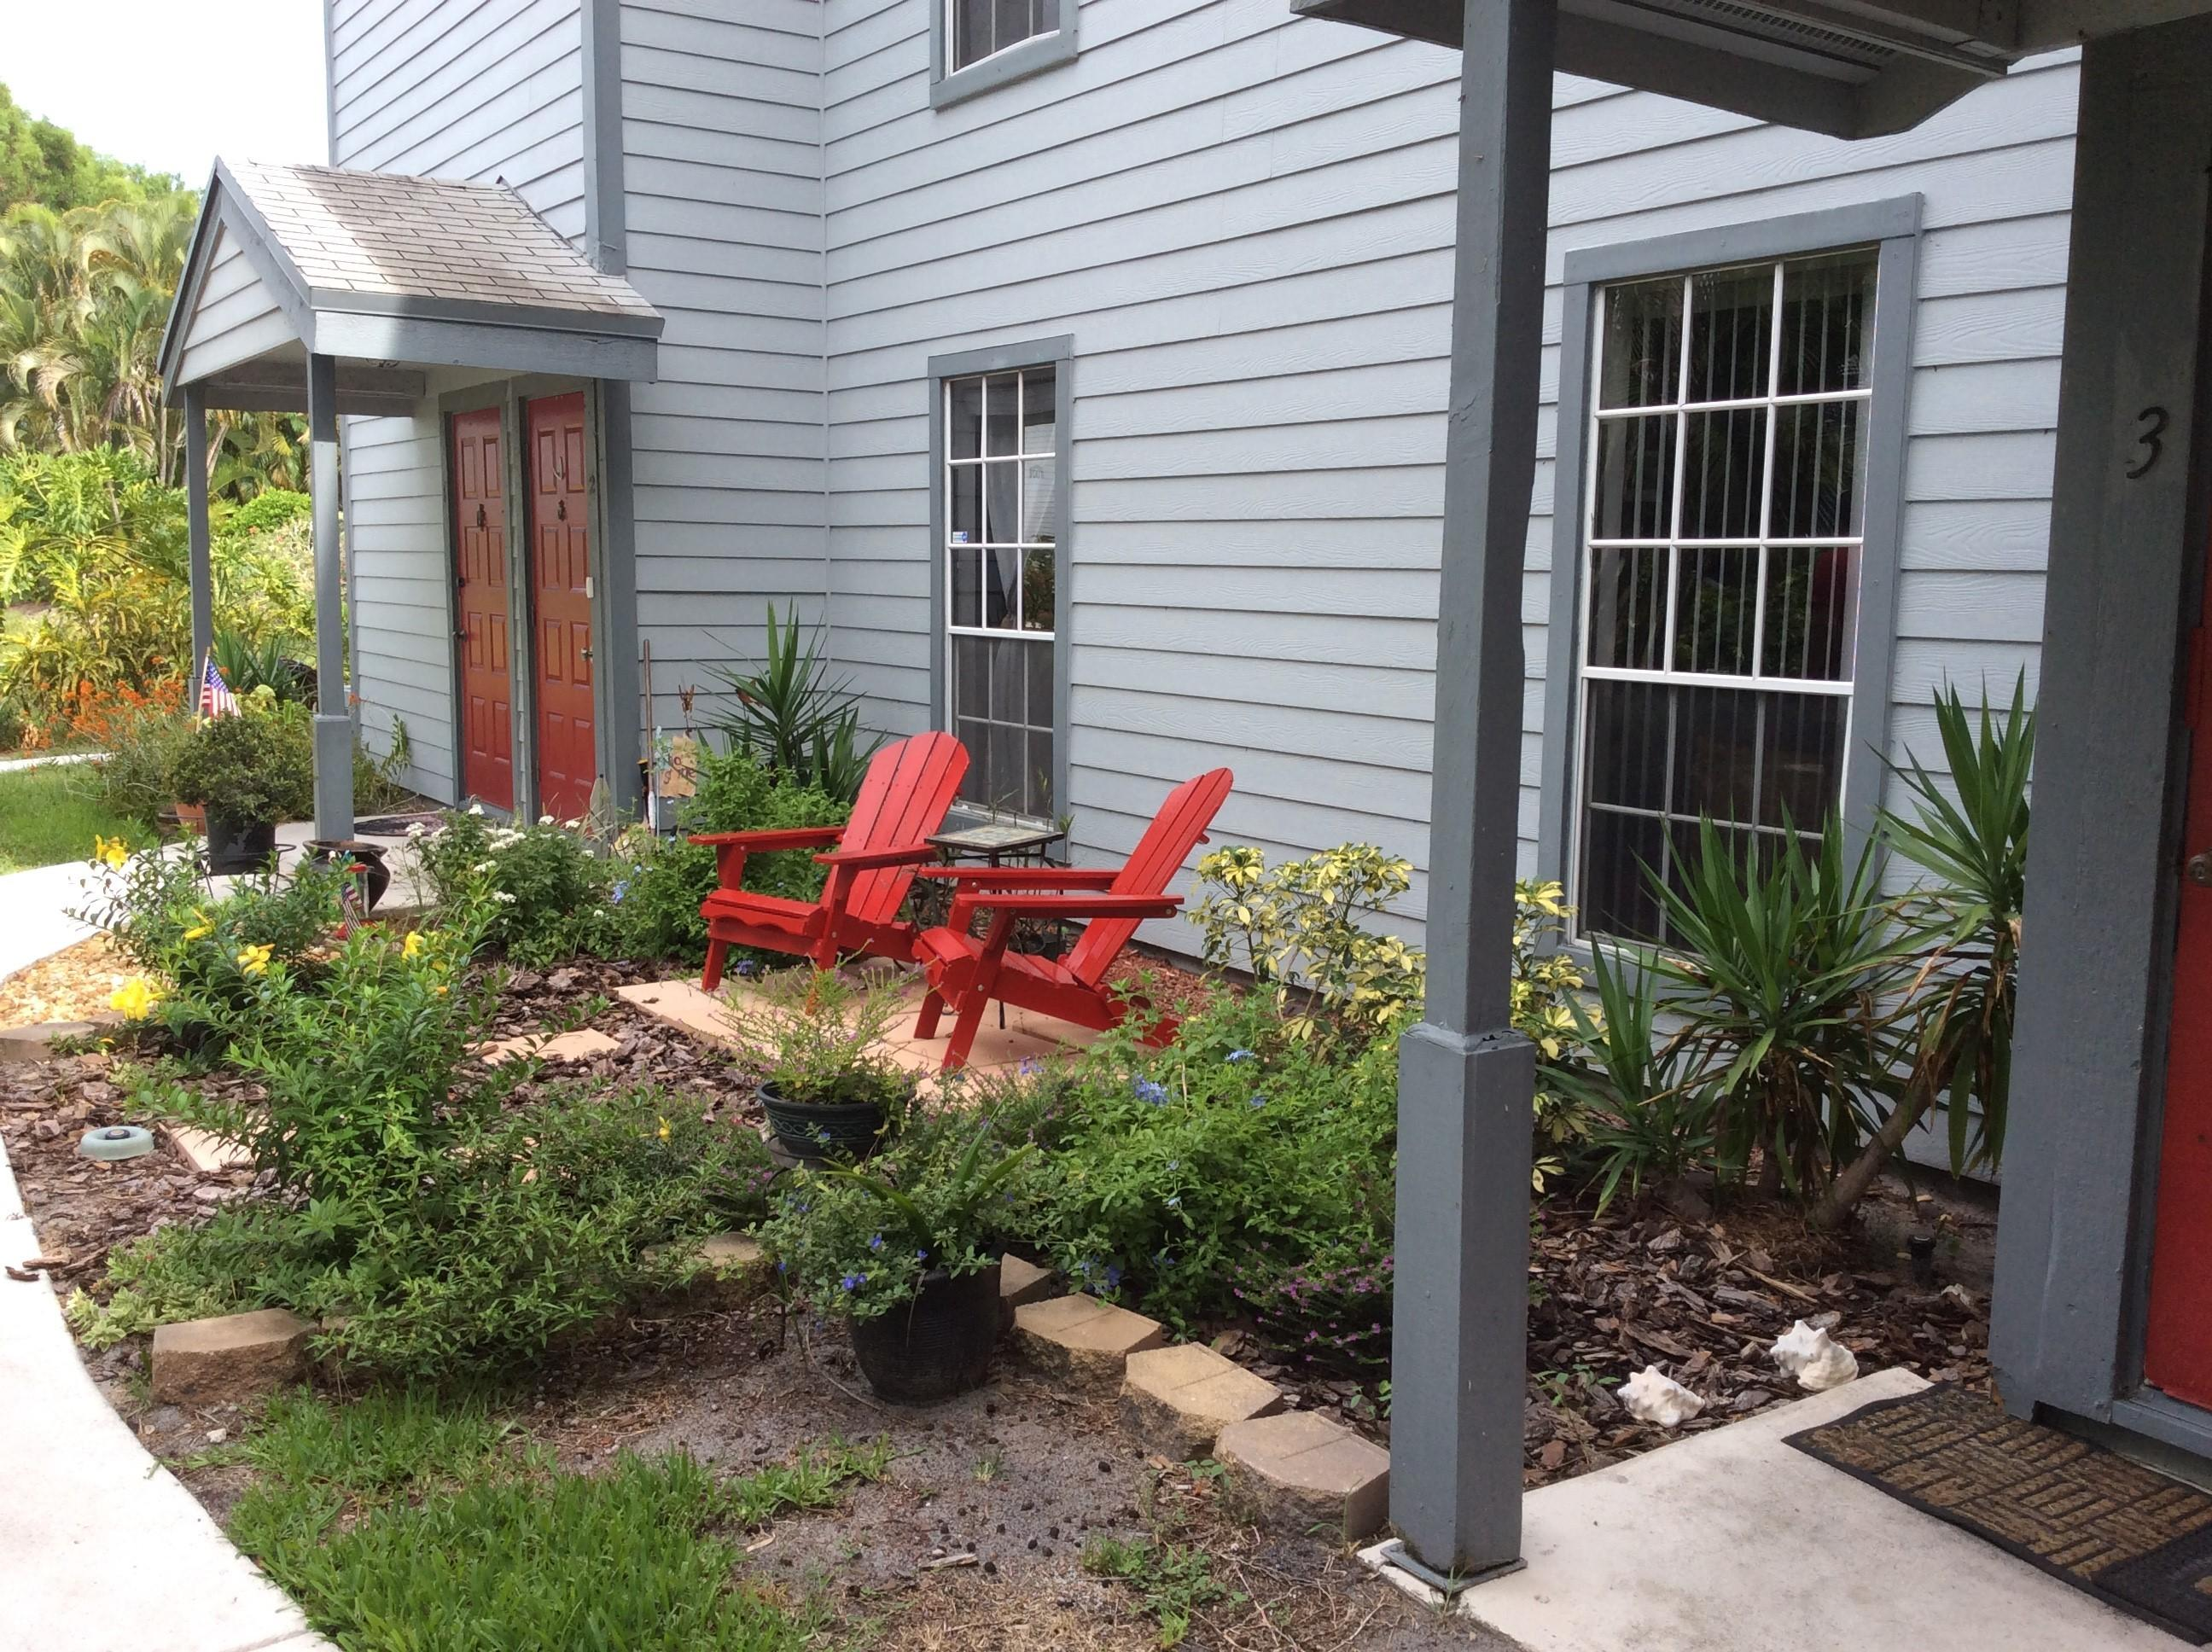 Home for sale in HEATHERWOOD COND DECL FILED 9-5-85 IN Boca Raton Florida